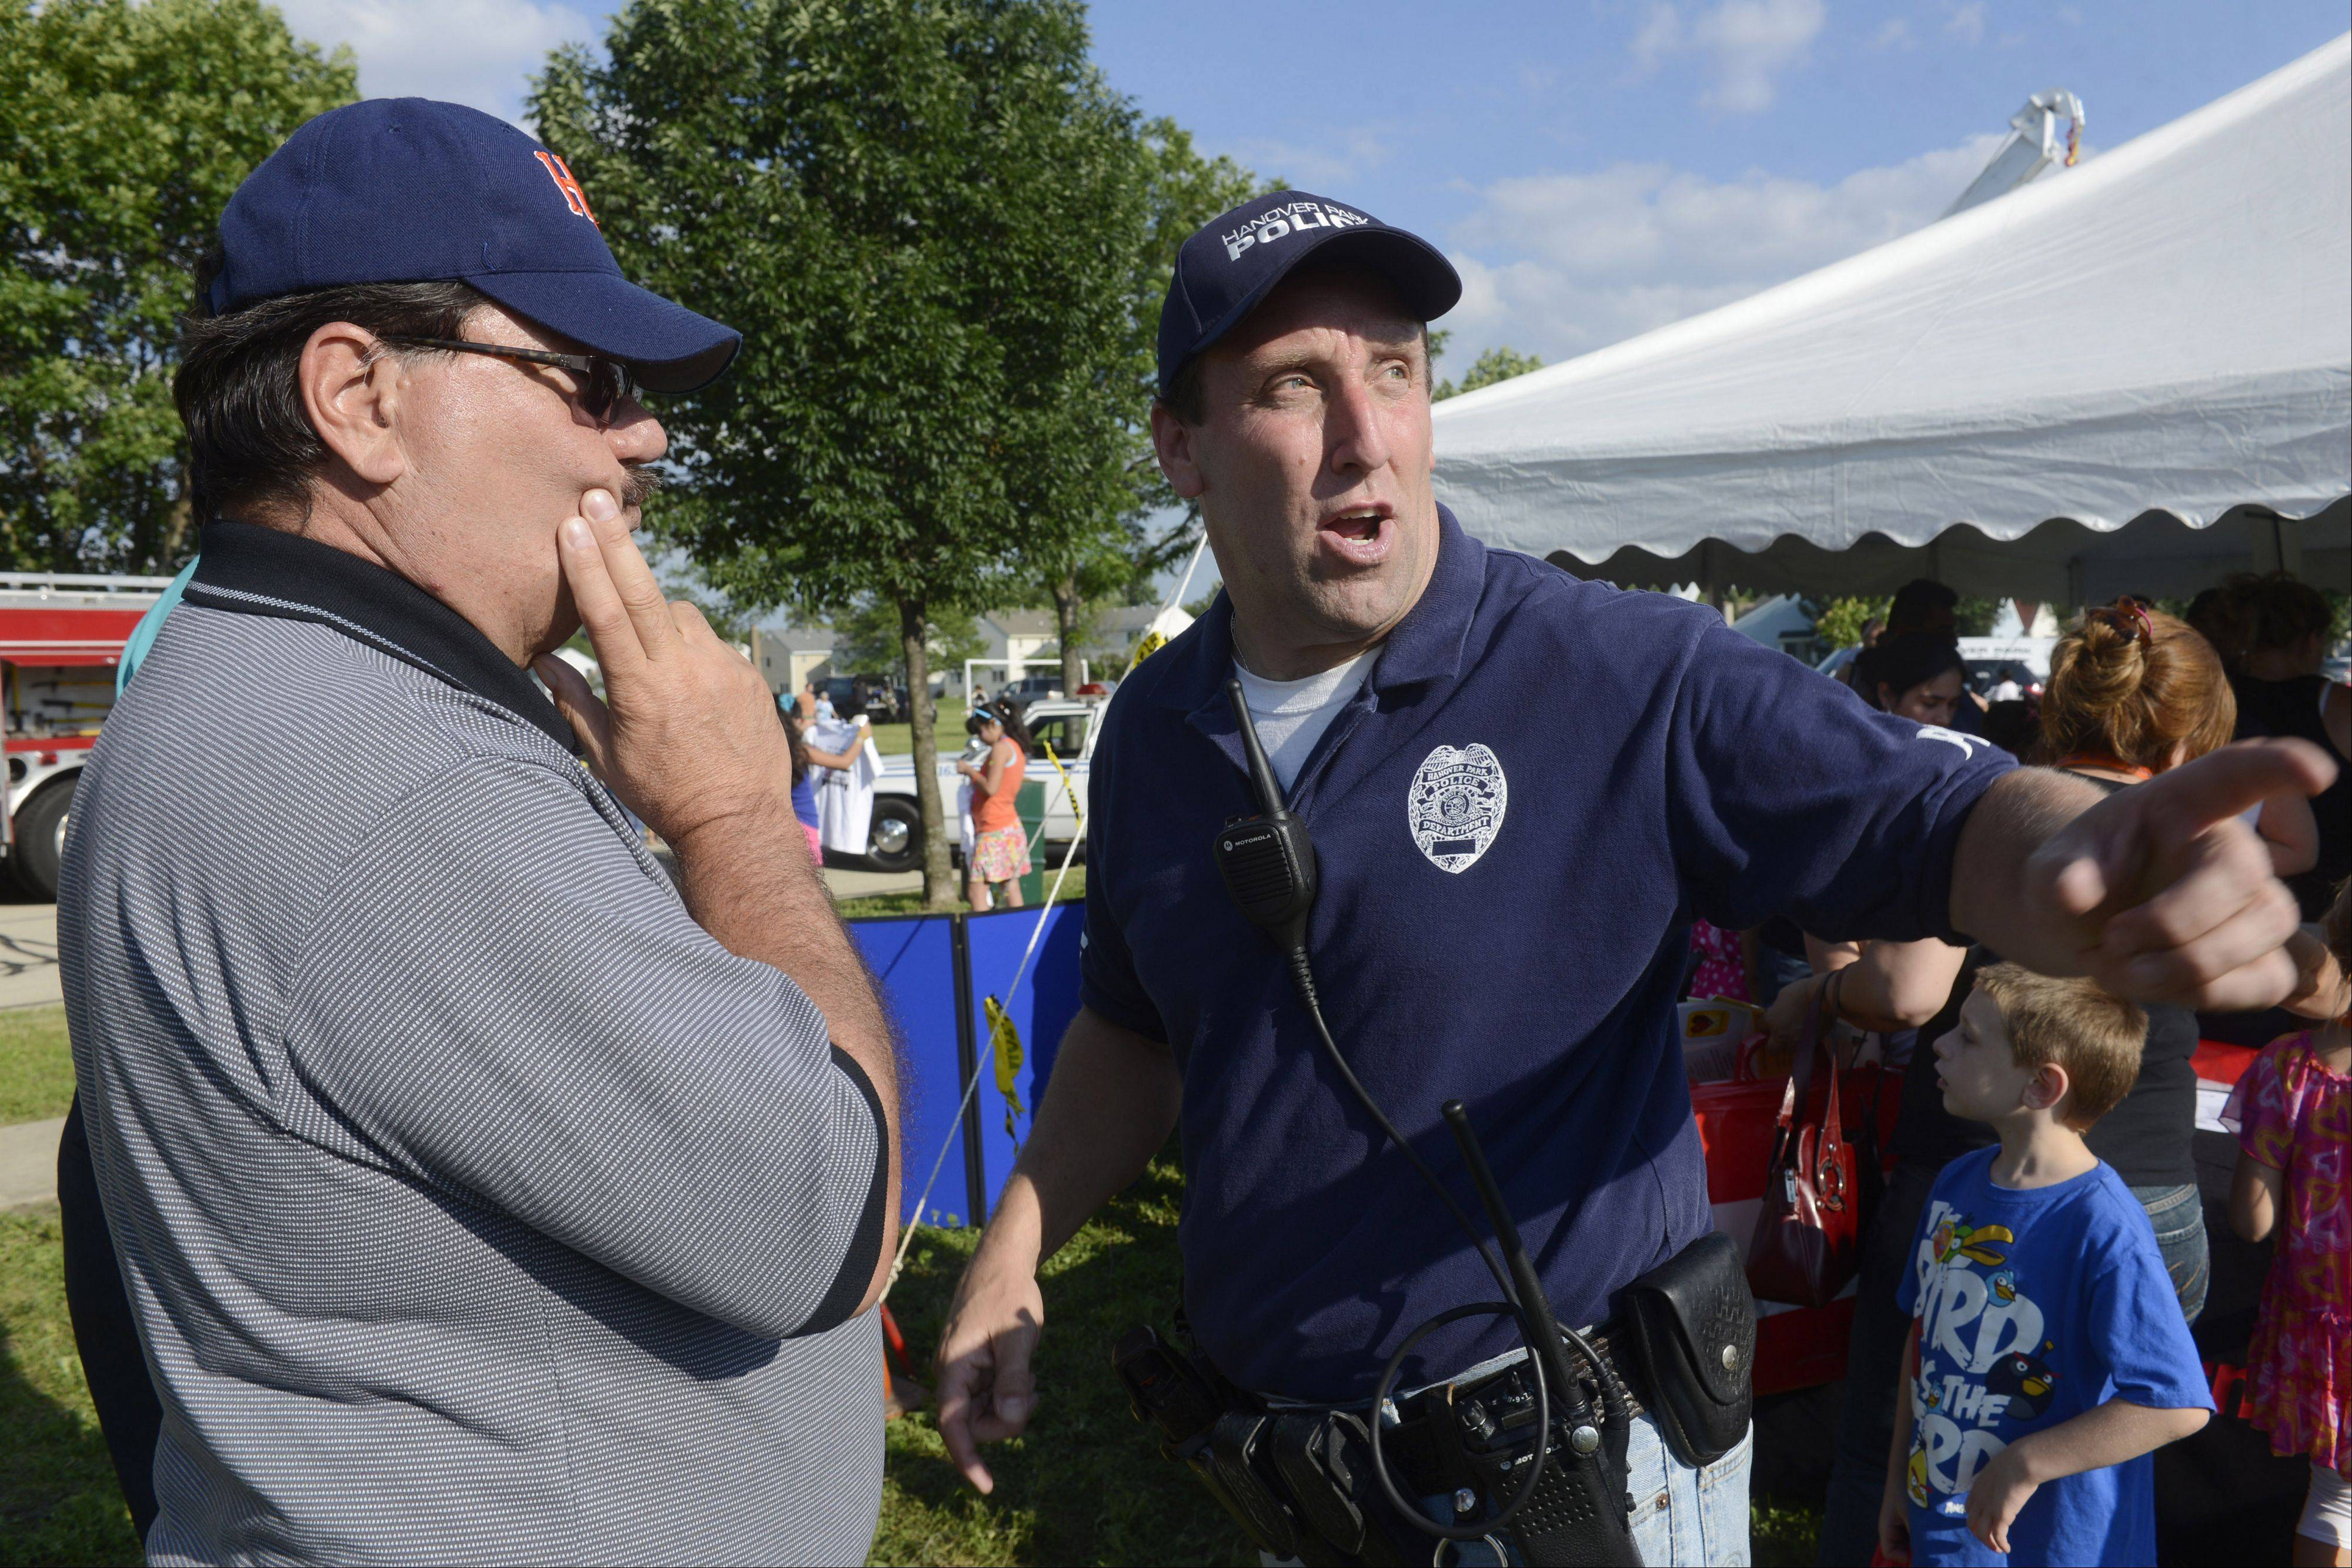 Hanover Park Police Officer George Sullivan, right, confers with Hanover Park Mayor Rodney Craig during the annual COPS Day Picnic at East Harbor Park in Hanover Park.